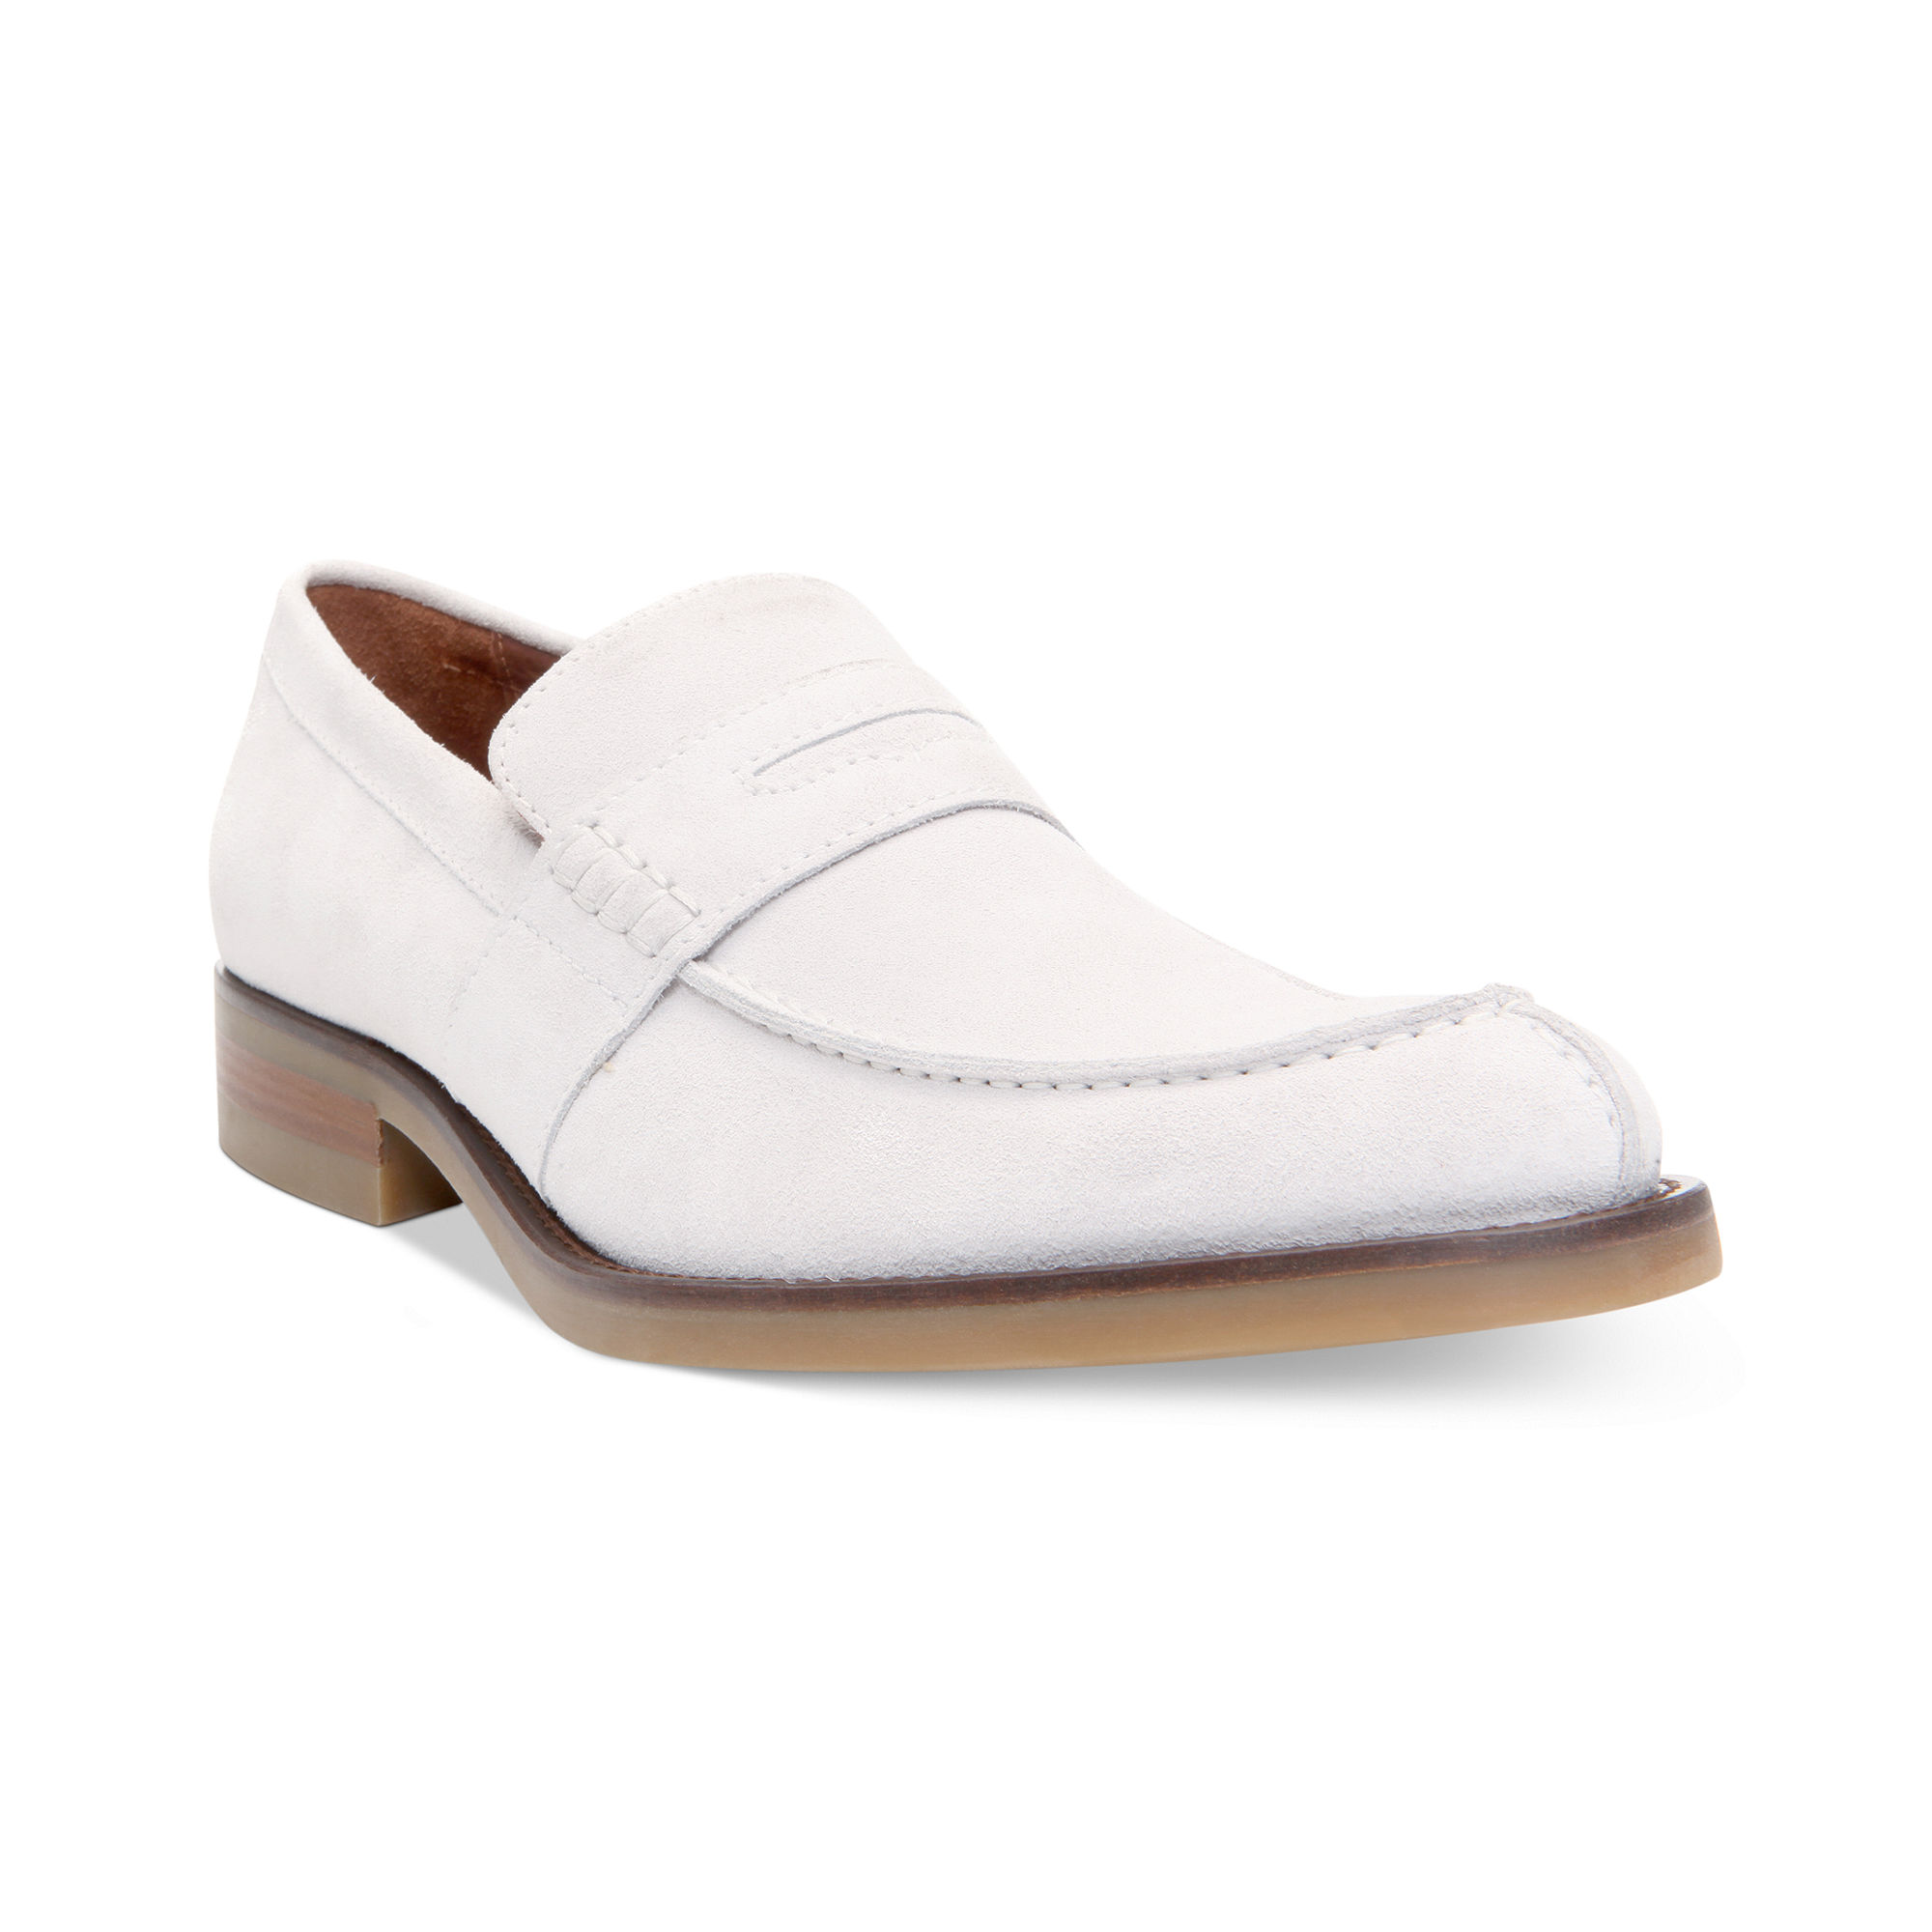 5cbf7d90fea Lyst - Donald J Pliner Evana Suede Penny Loafers in White for Men